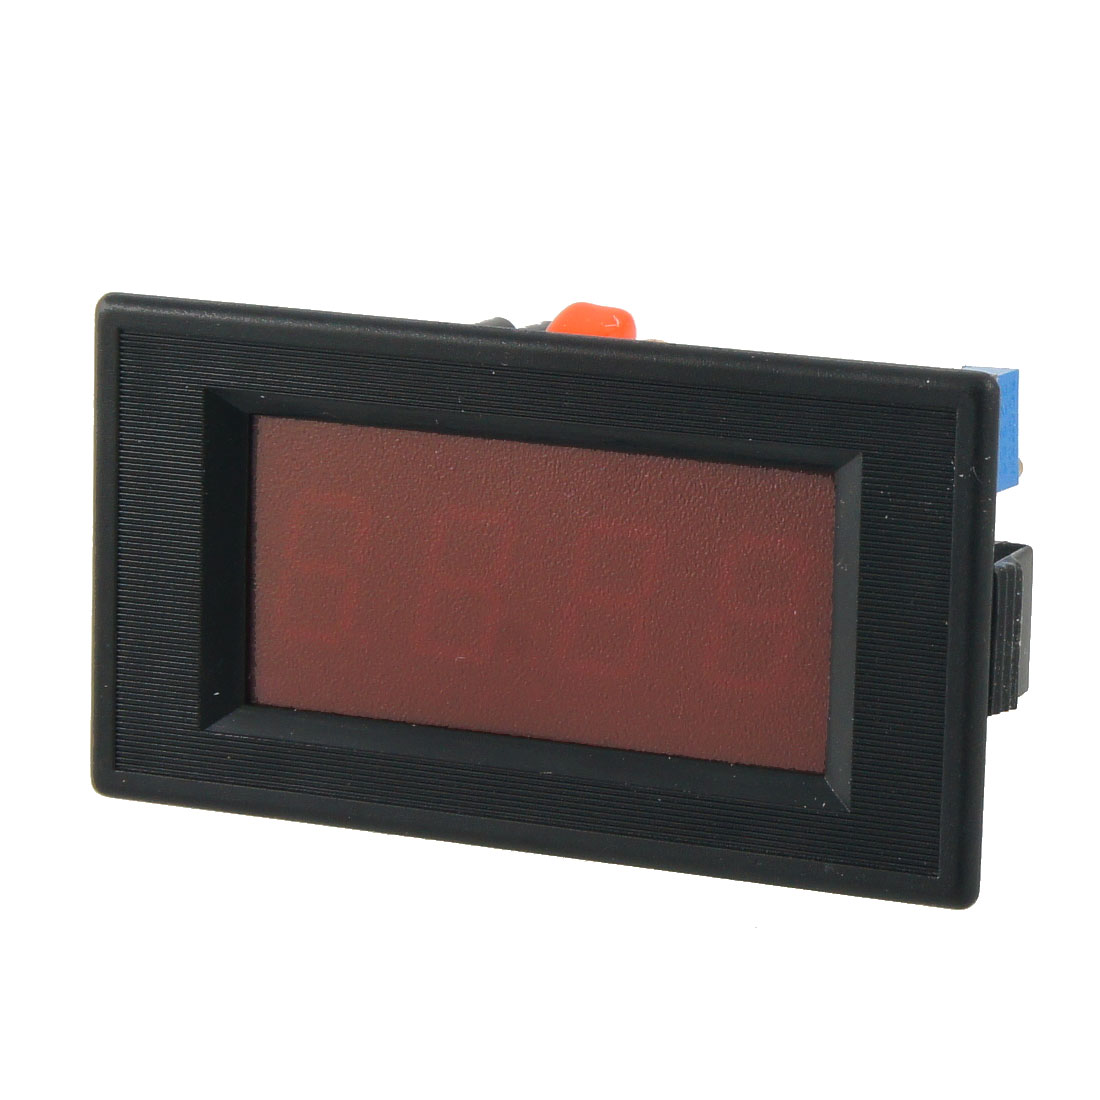 Red LED Digital Display DC 0-20V Voltage Test Panel Voltmeter